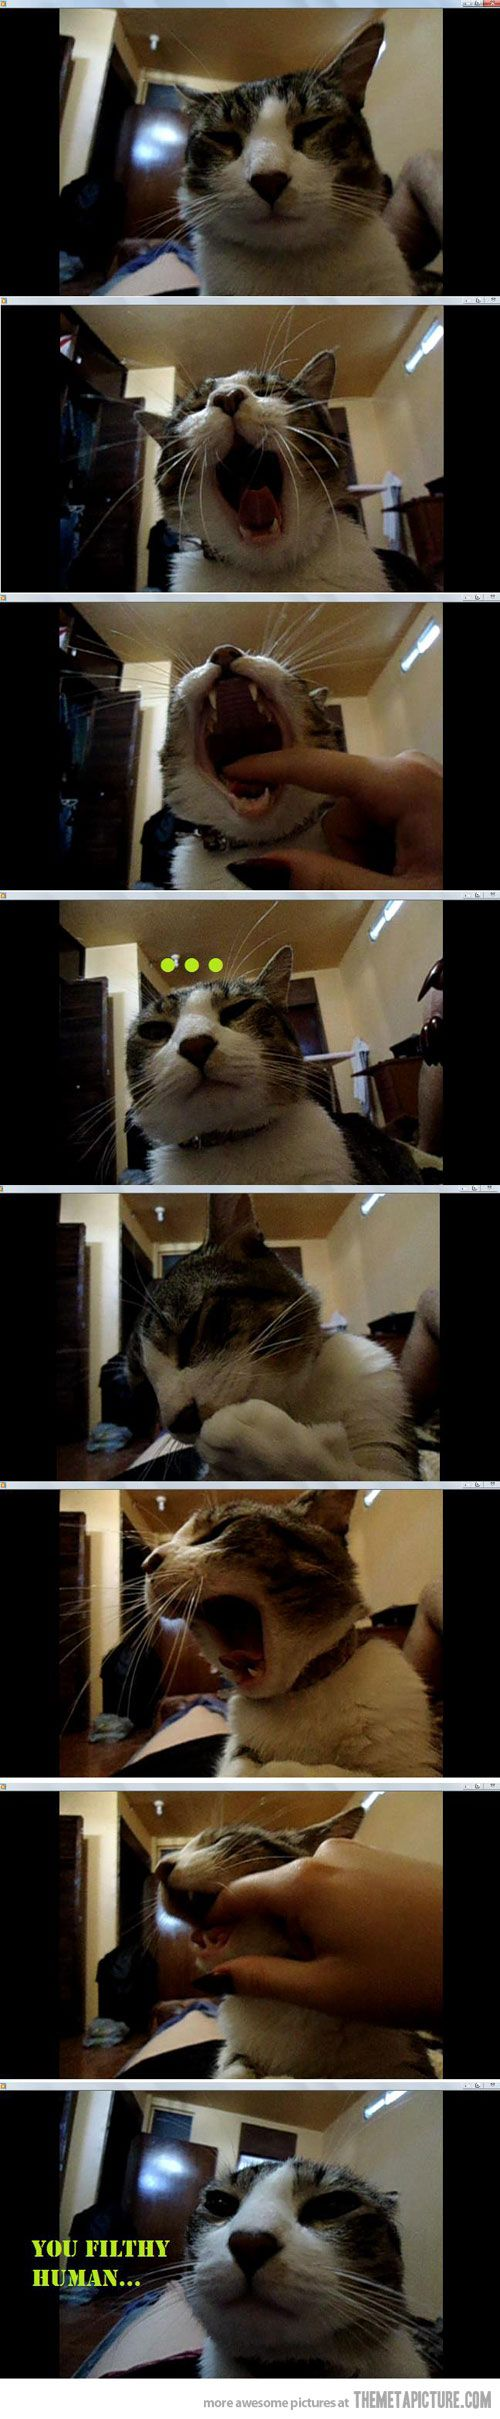 best meong images on pinterest funny animals funny kitties and